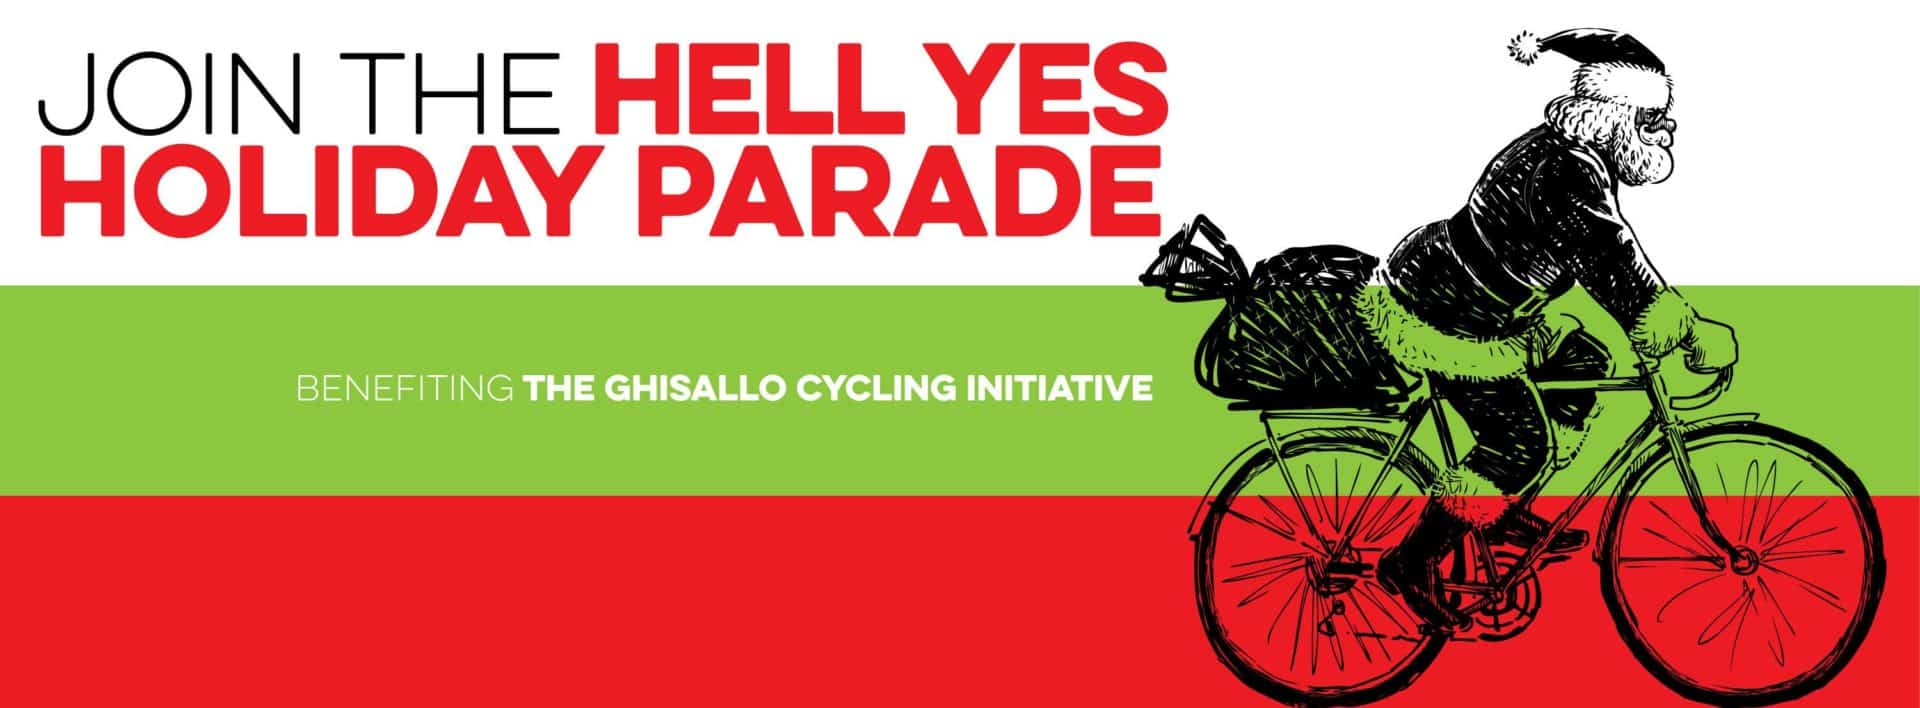 abgb-hell-yes-holiday-parade Austin Craft Beer Events Dec 12th to 18th 2016